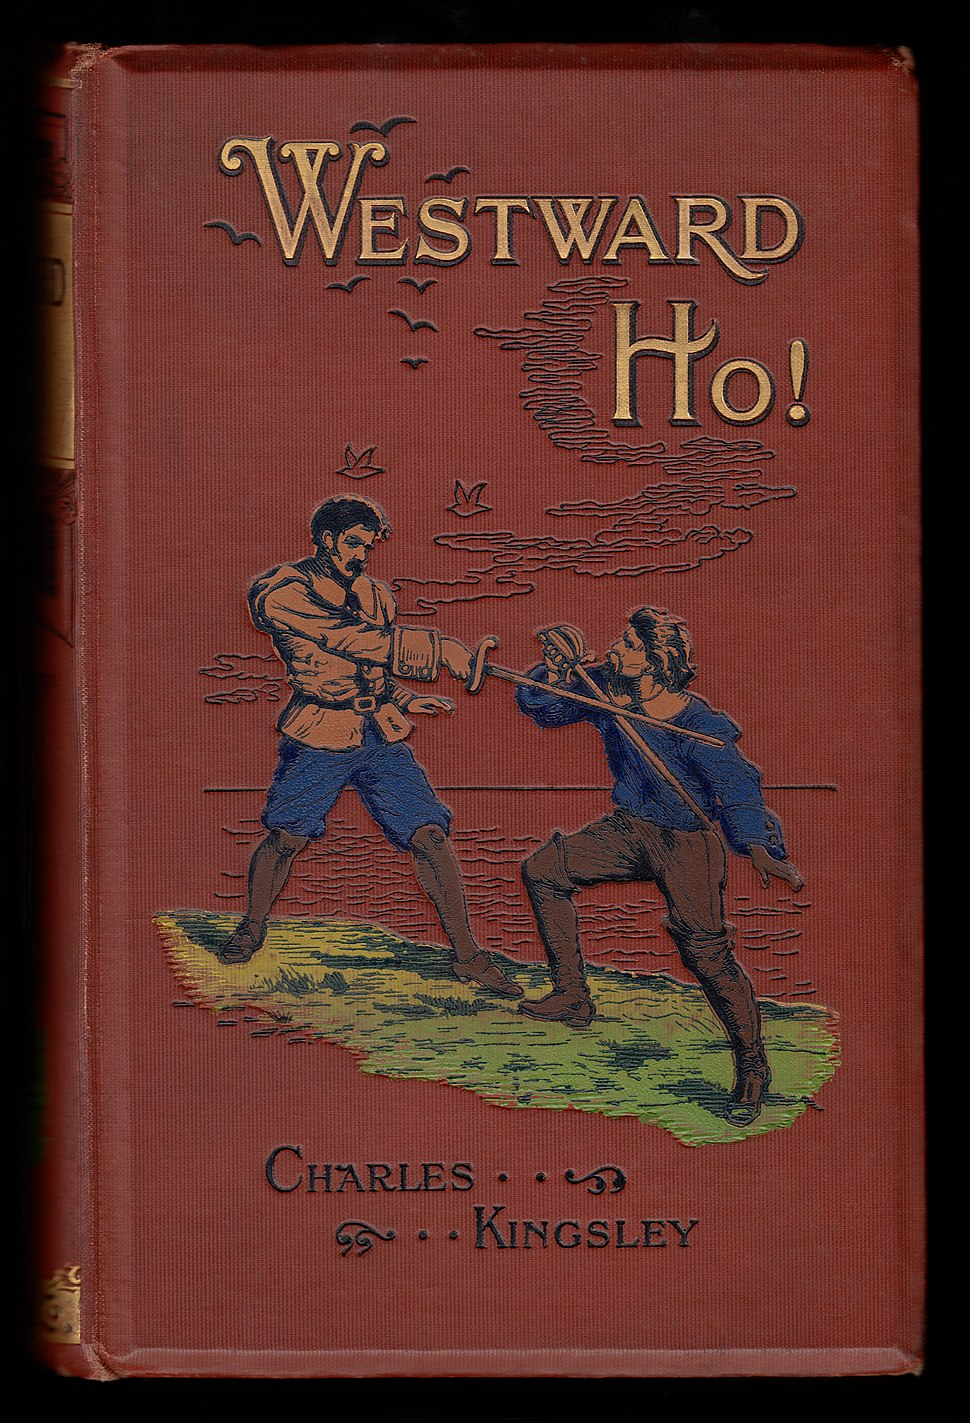 Charles Kingley - 1899 Westward Ho! cover 2